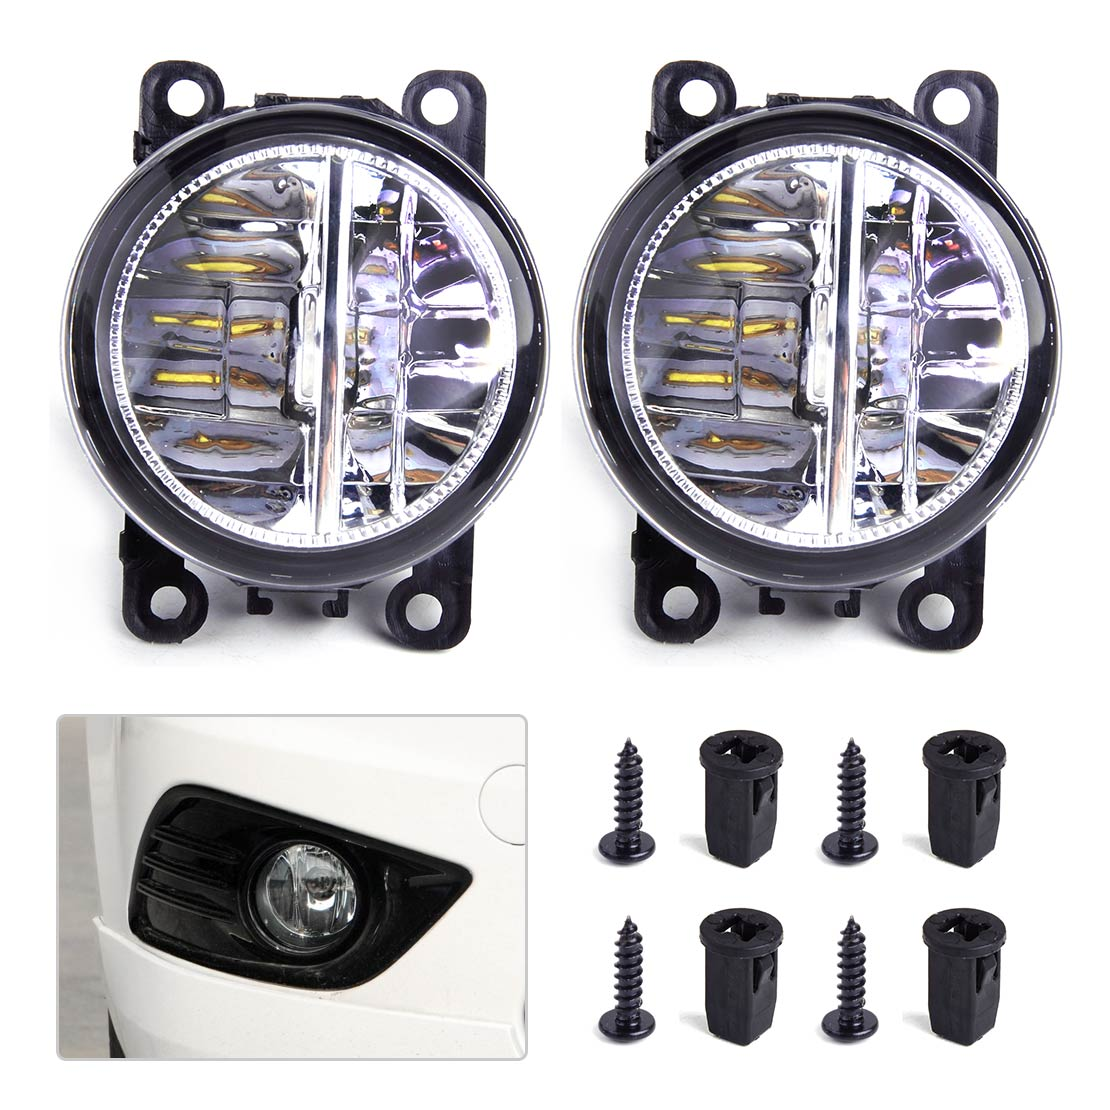 beler 2pcs LED Fog Light Lamp 4F9Z-15200-AA for Ford Focus Honda CR-V Lincoln LS Nissan Sentra Subaru Outback Suzuki Swift<br>